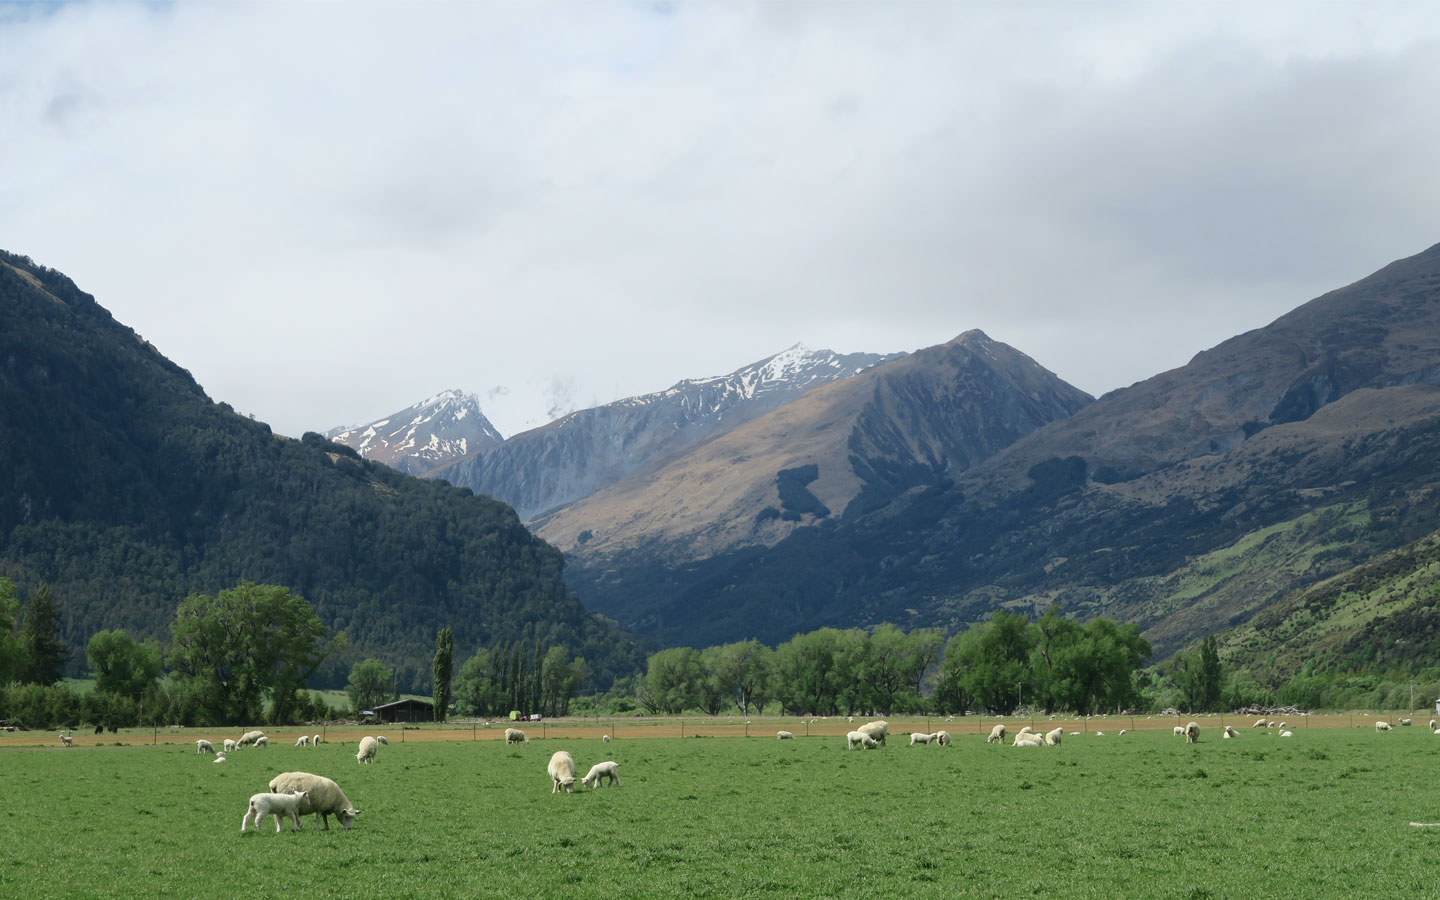 sheep in front of mountains in glenorchy in new zealand